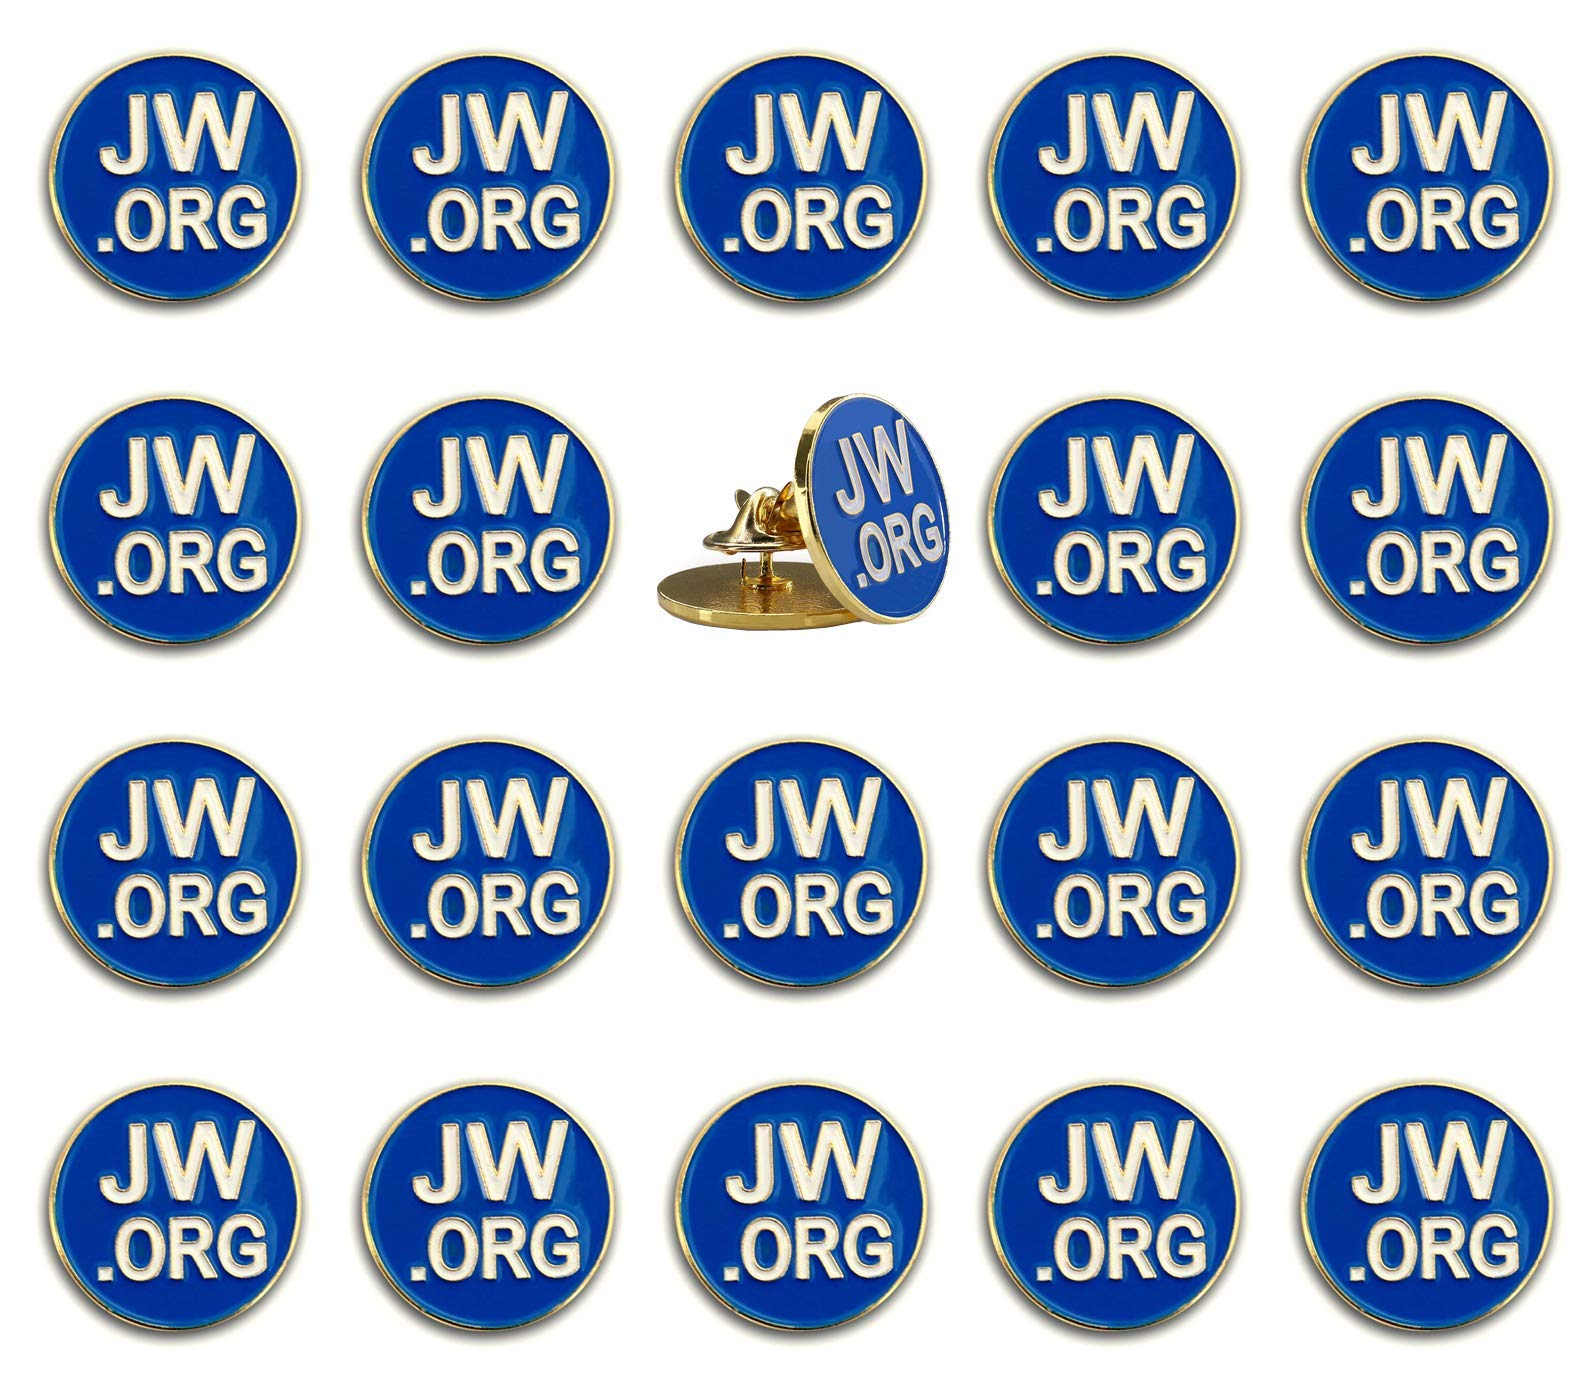 PHAETON 20PCS Round Blue Lapel Pin - JW.org Neck Tie Hat Tack Clip Women or Men Suits-Gold Round Jehovah Witness Lapel Pin by PHAETON